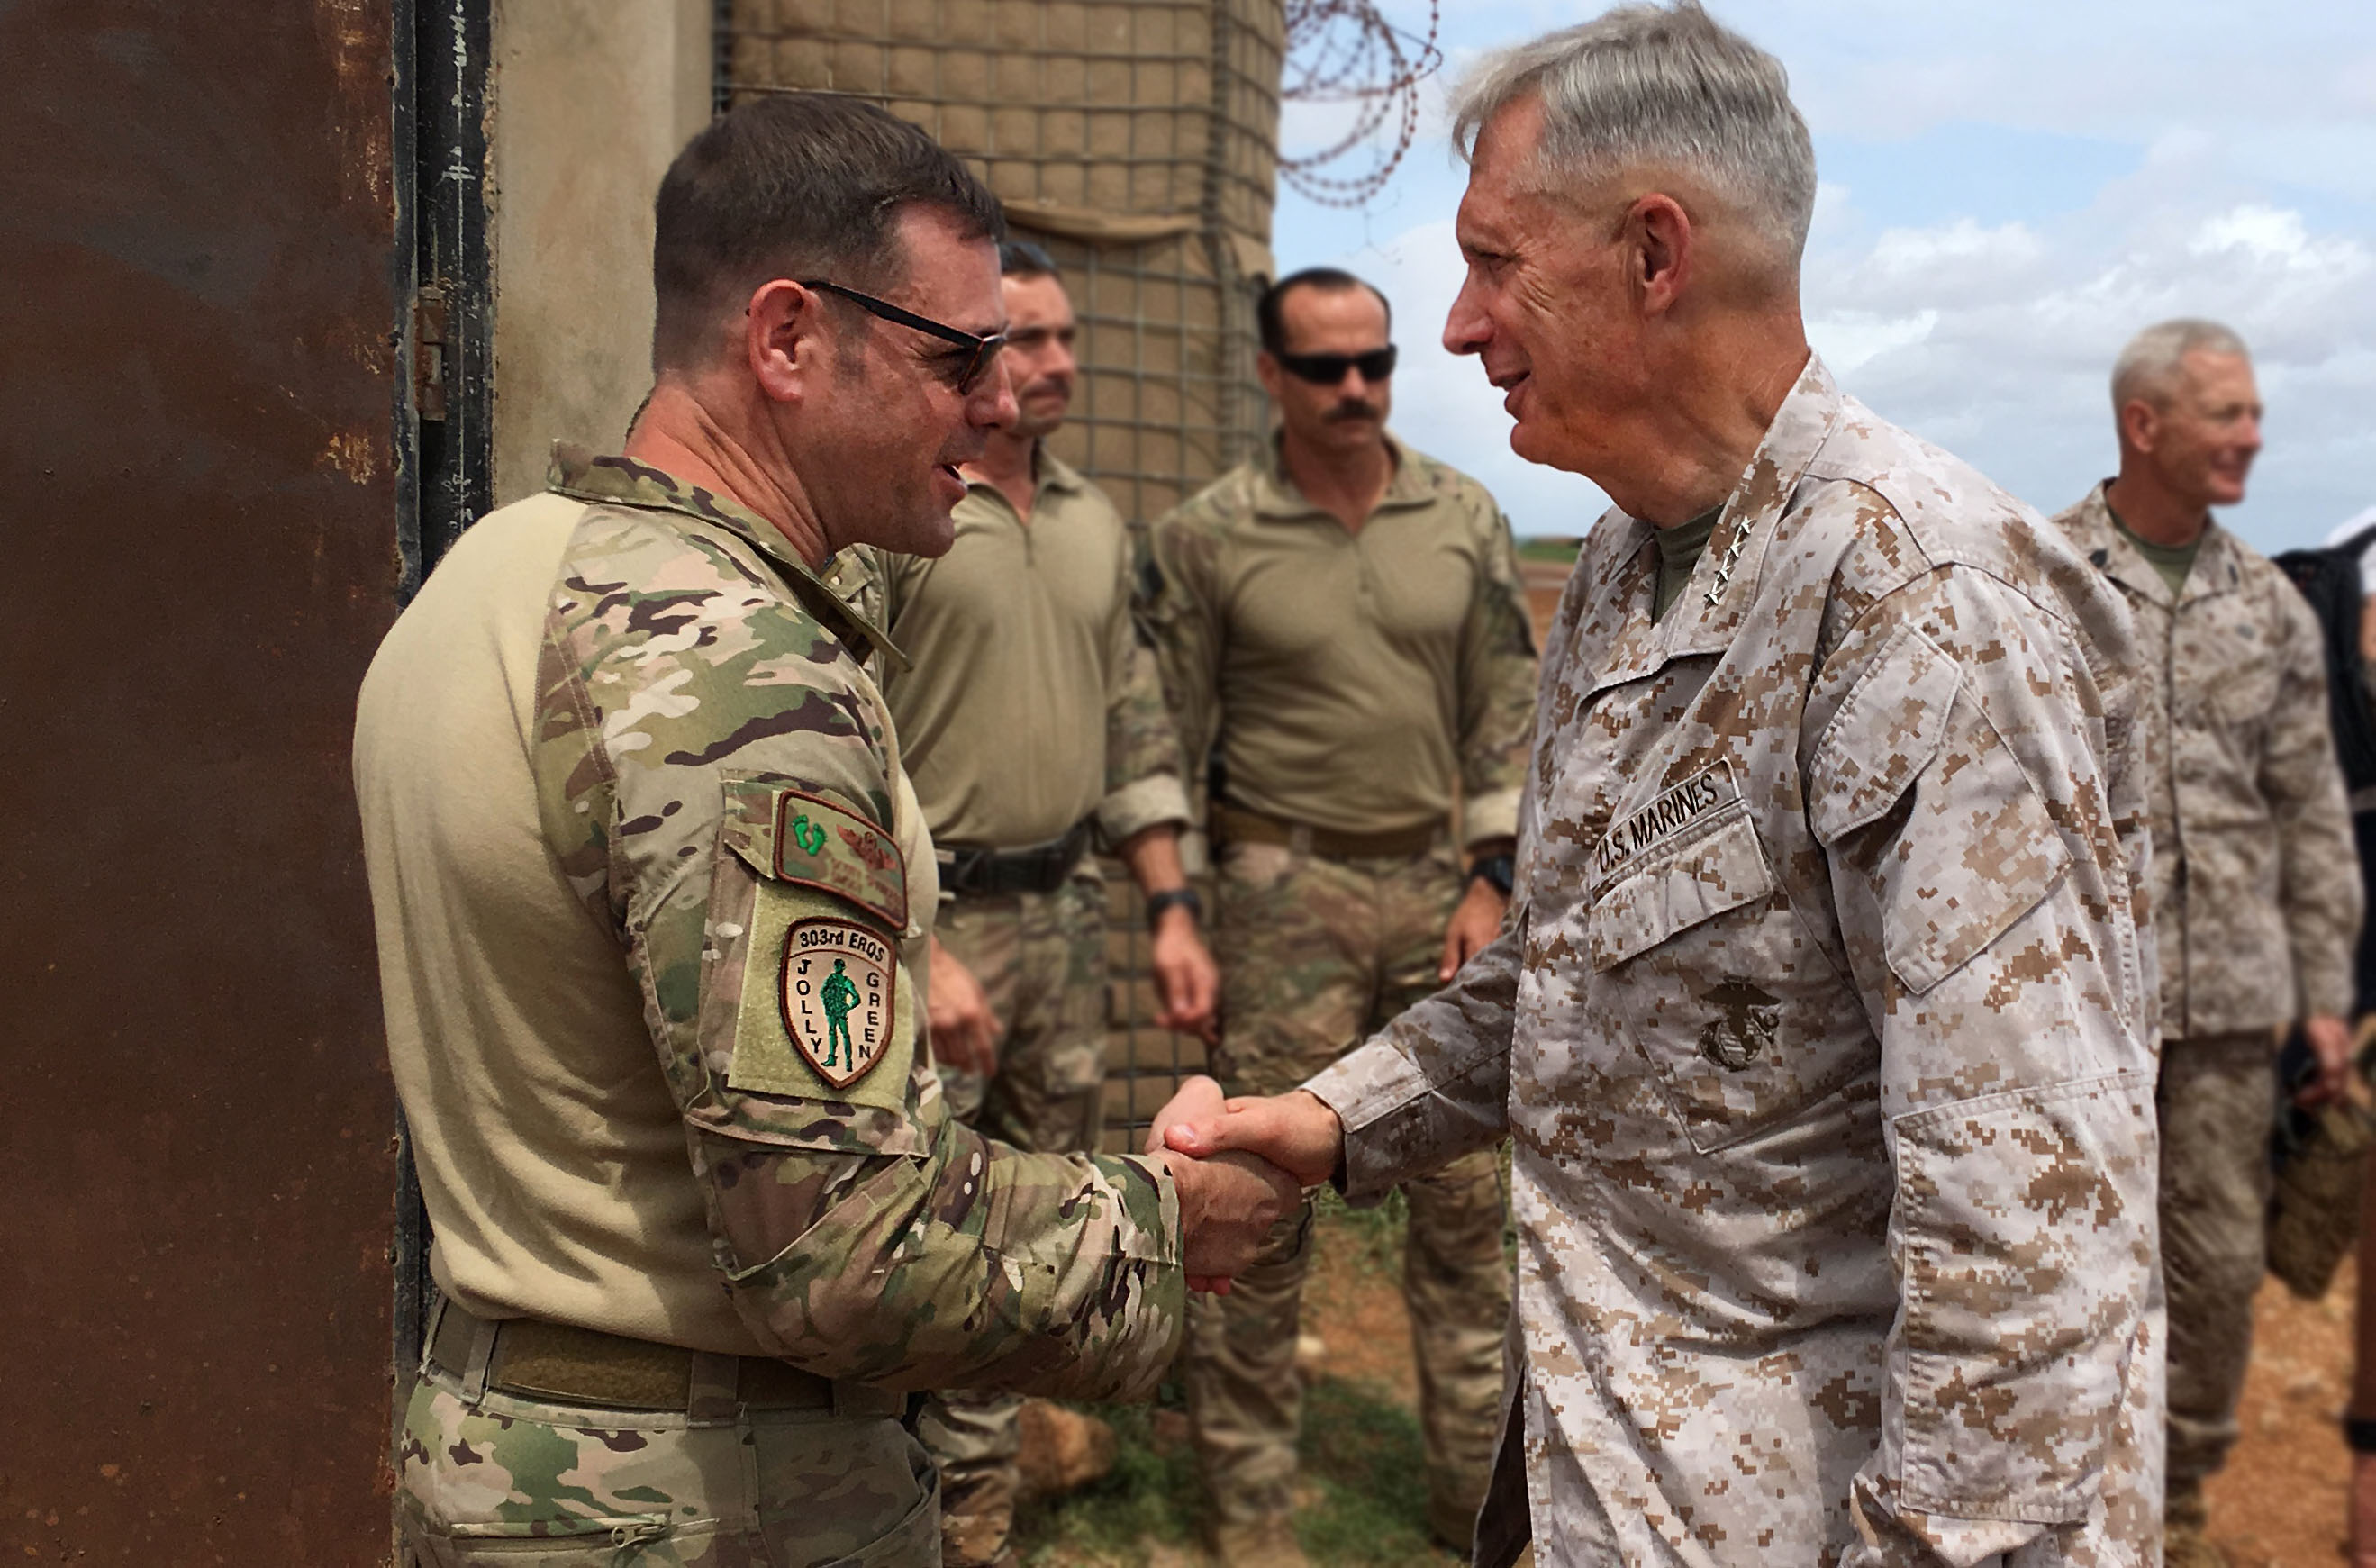 U.S. Marine Corps Gen. Thomas Waldhauser, commander, U.S. Africa Command, thanks U.S. Africa Command forces at a forward operating location in Somalia, June 11, 2019. Waldhauser visited the forward deployed unit to assess progress in enhancing Somali defense capabilities.